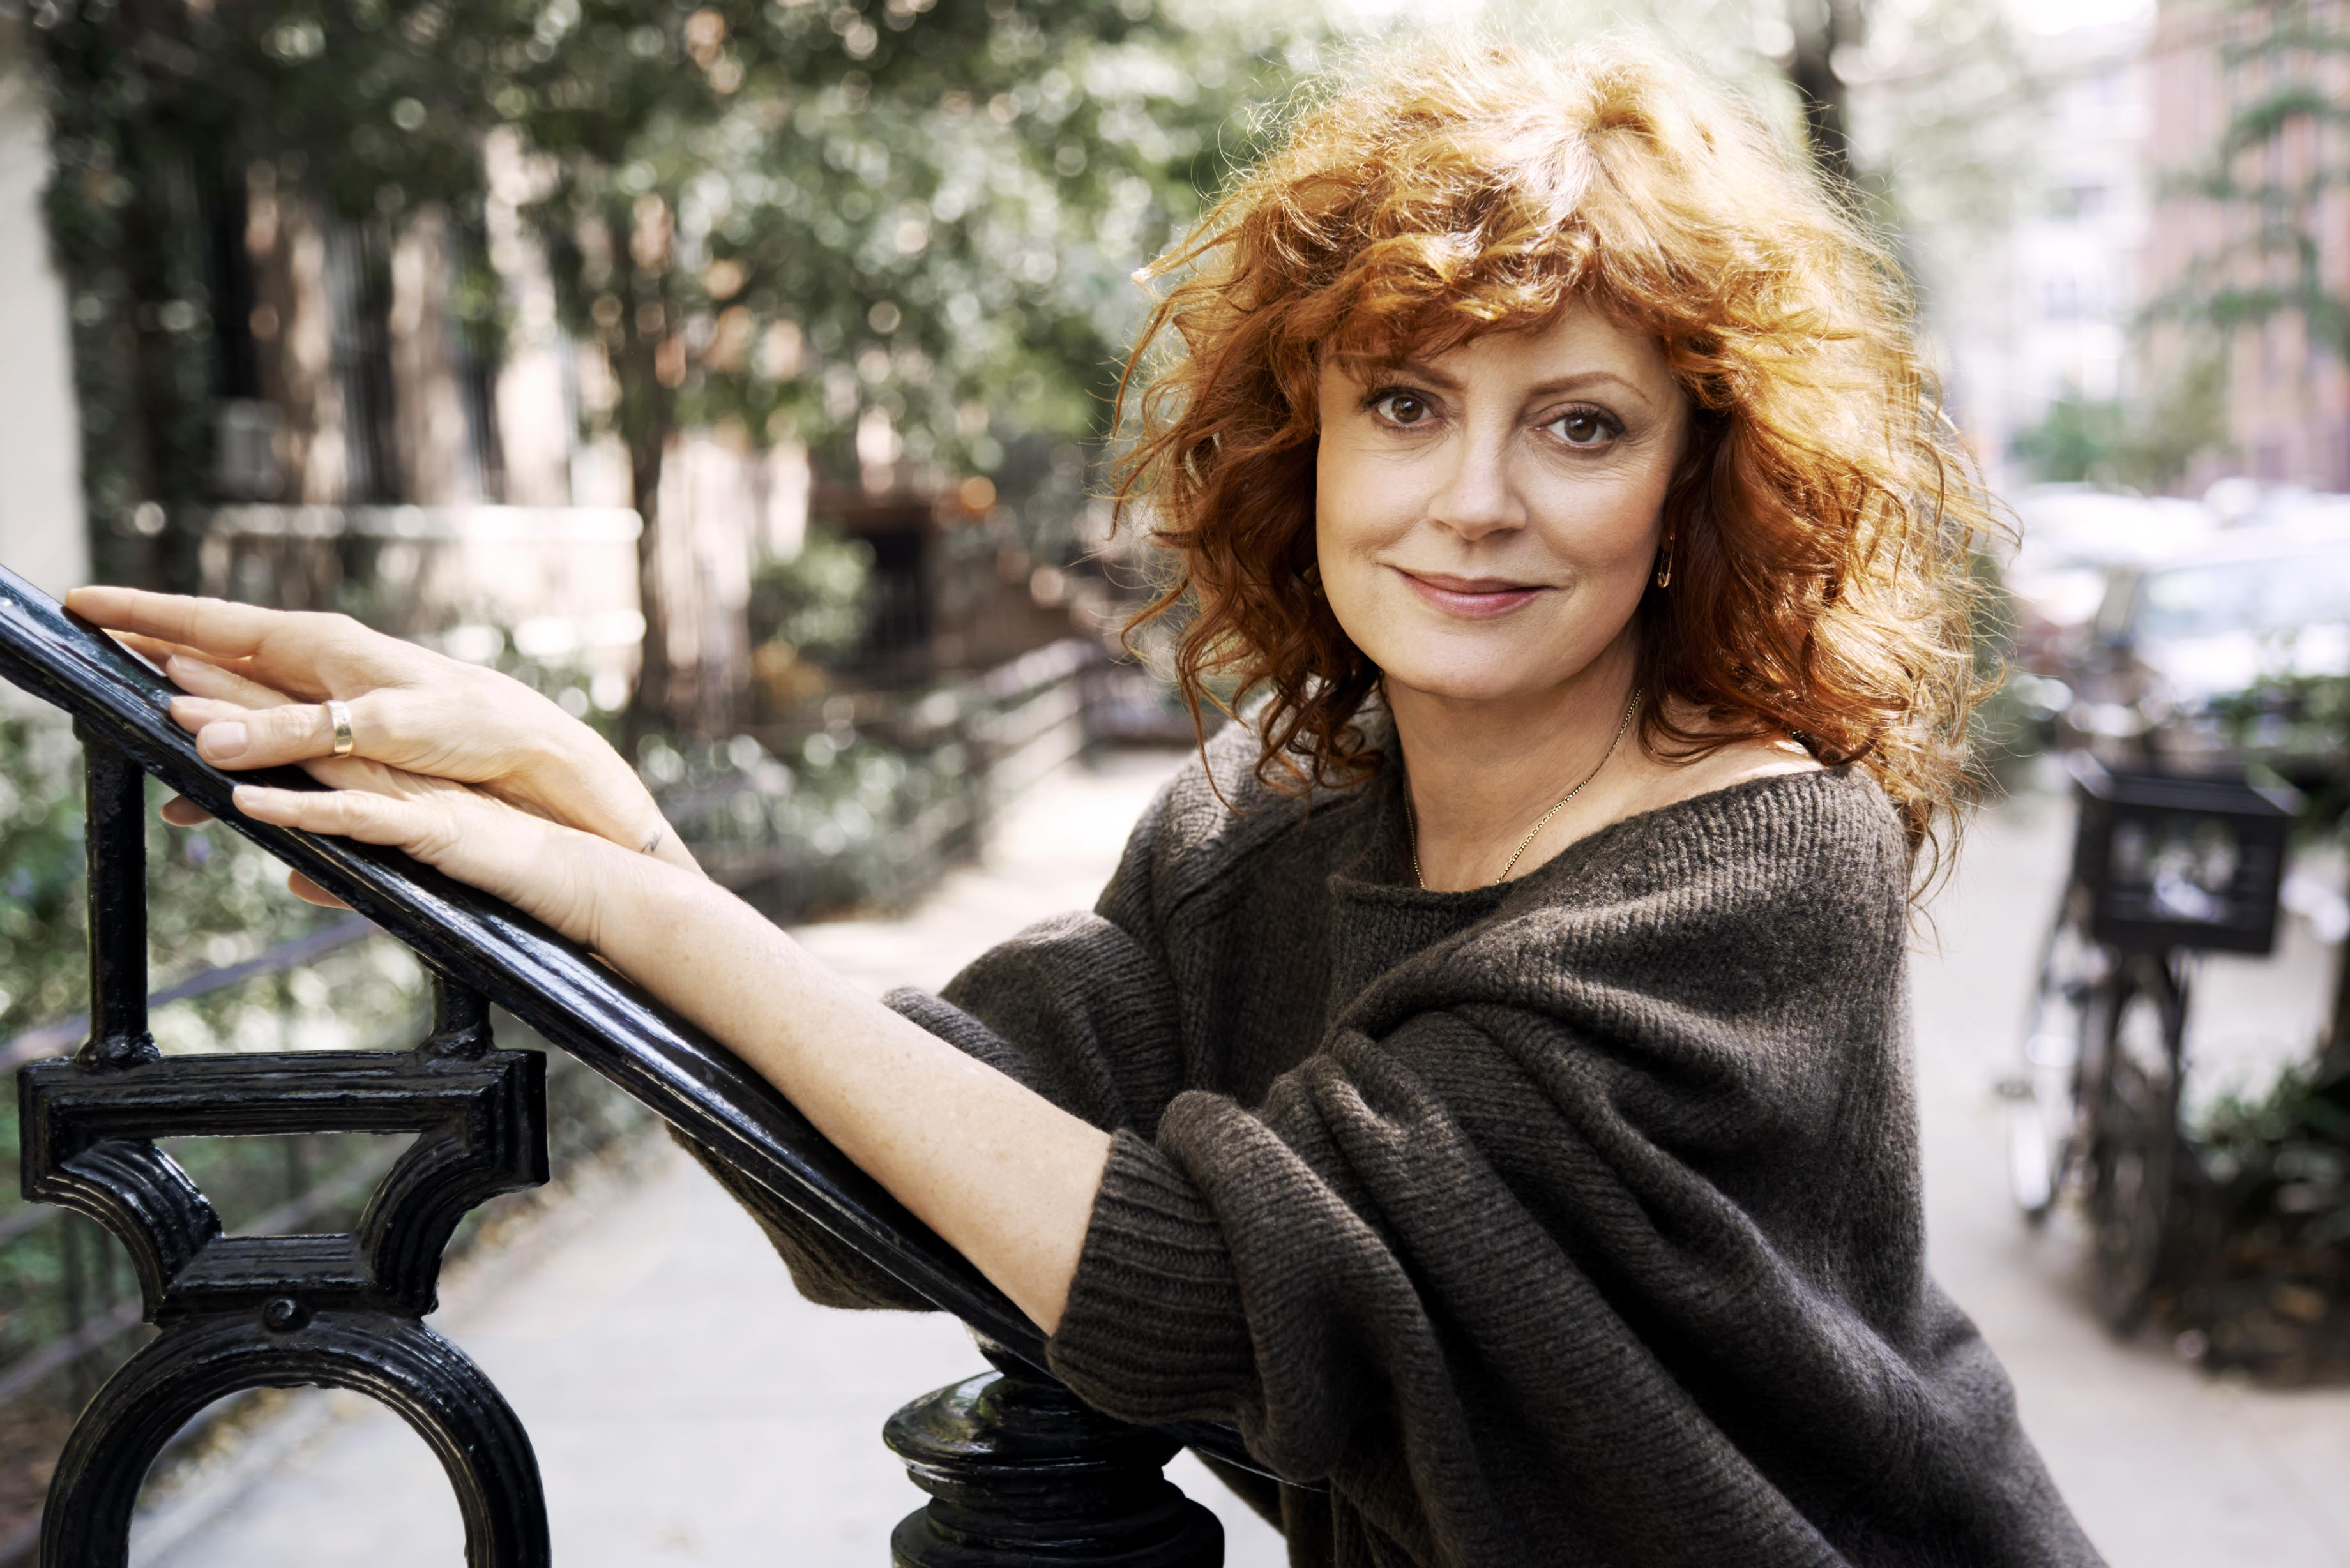 Showthread in addition 1018131527 in addition Charming Printable Kitchen Conversion Chart moreover Retirement Quotes For Nurses additionally Jeff Lipsky Photographs Susan Sarandon For Aarp The Magazine Plus Behind The Scenes Video. on oscar nursing home